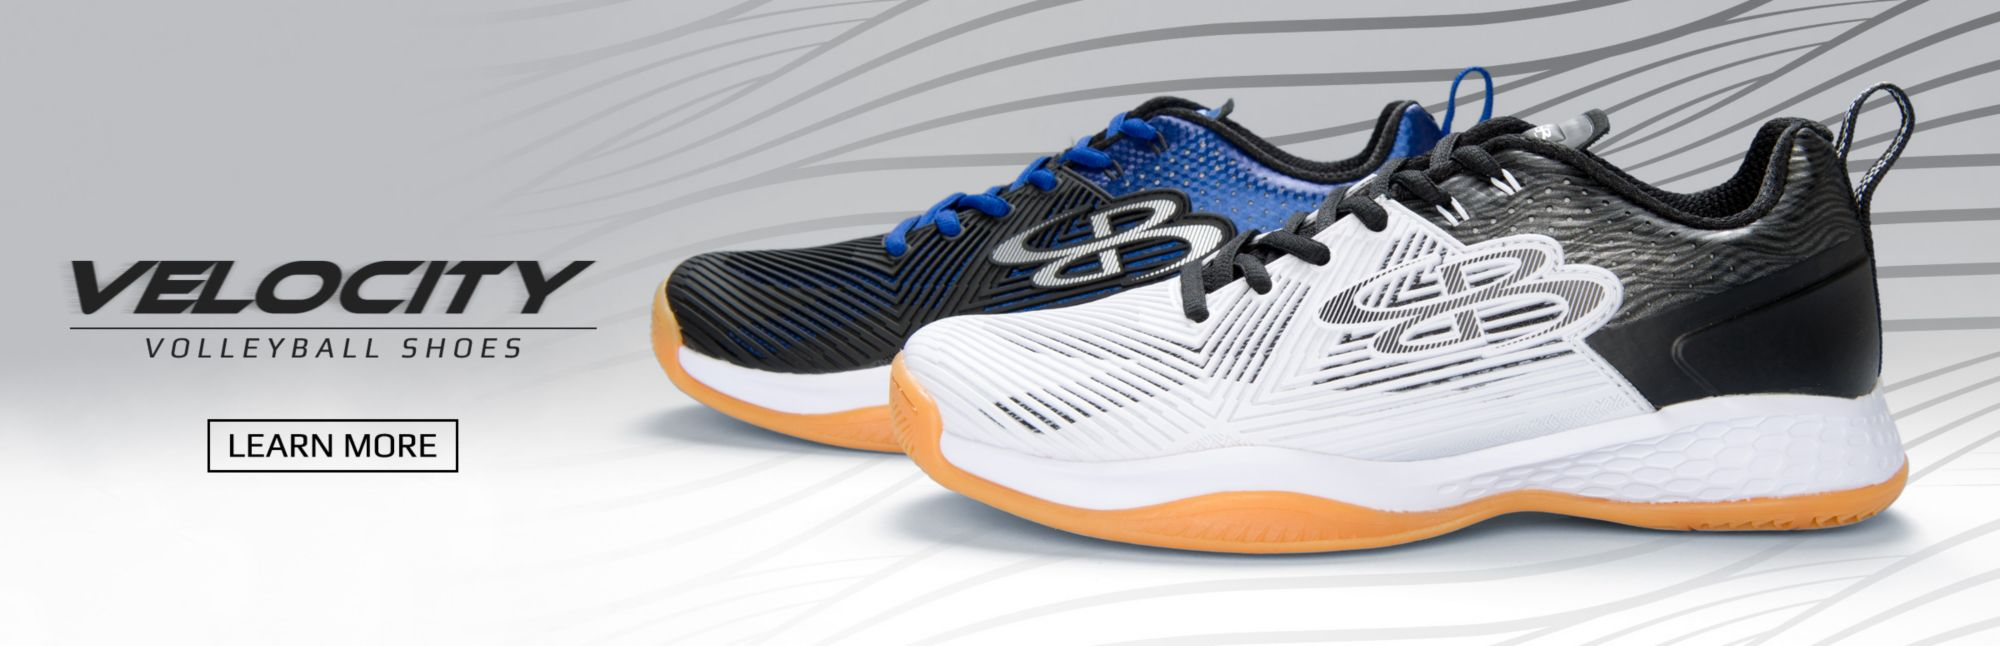 Boombah Velocity Volleyball Shoes